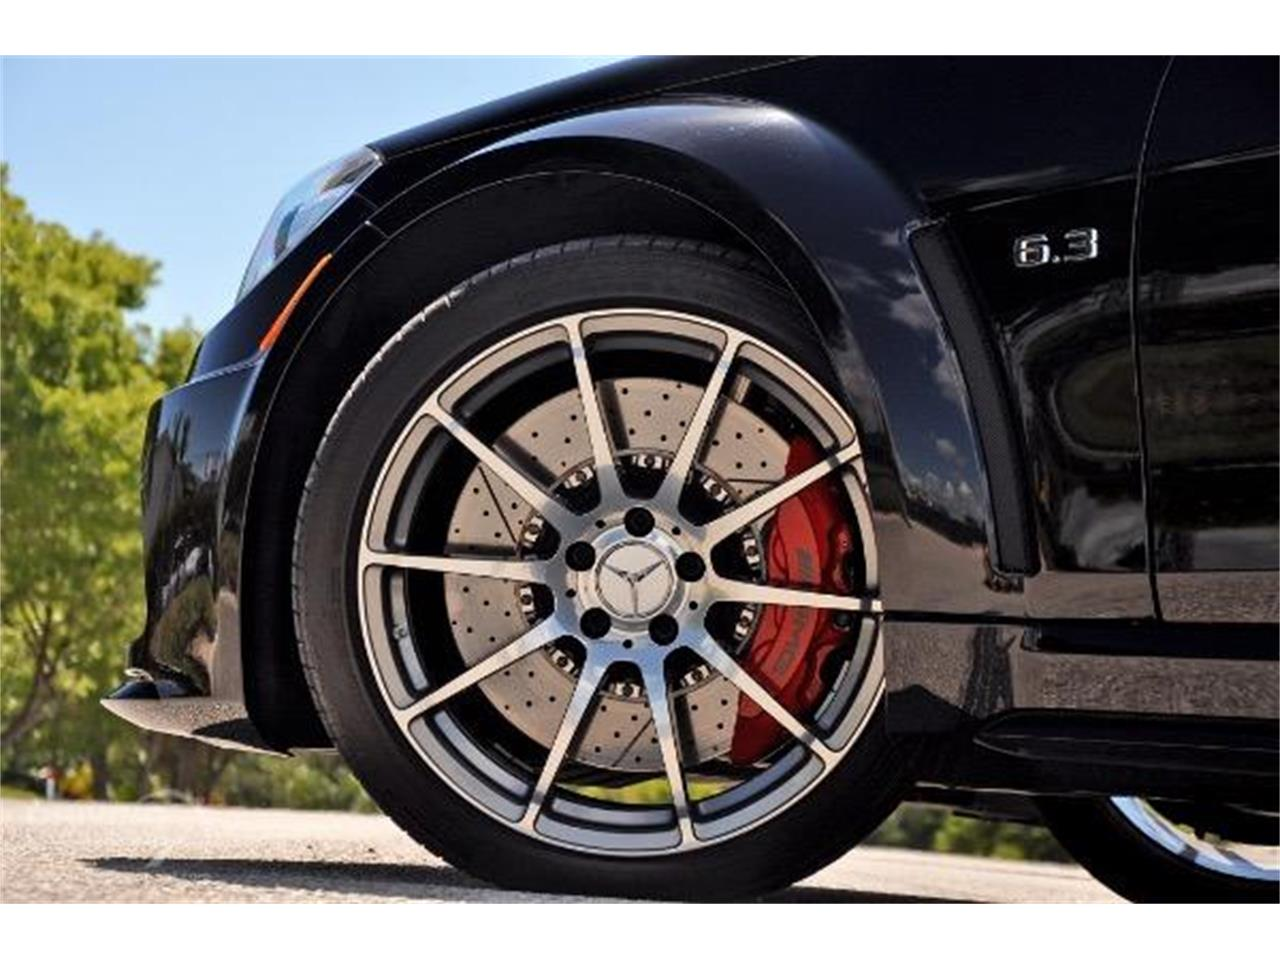 2013 Mercedes-Benz C63 AMG for sale in West Palm Beach, FL – photo 55